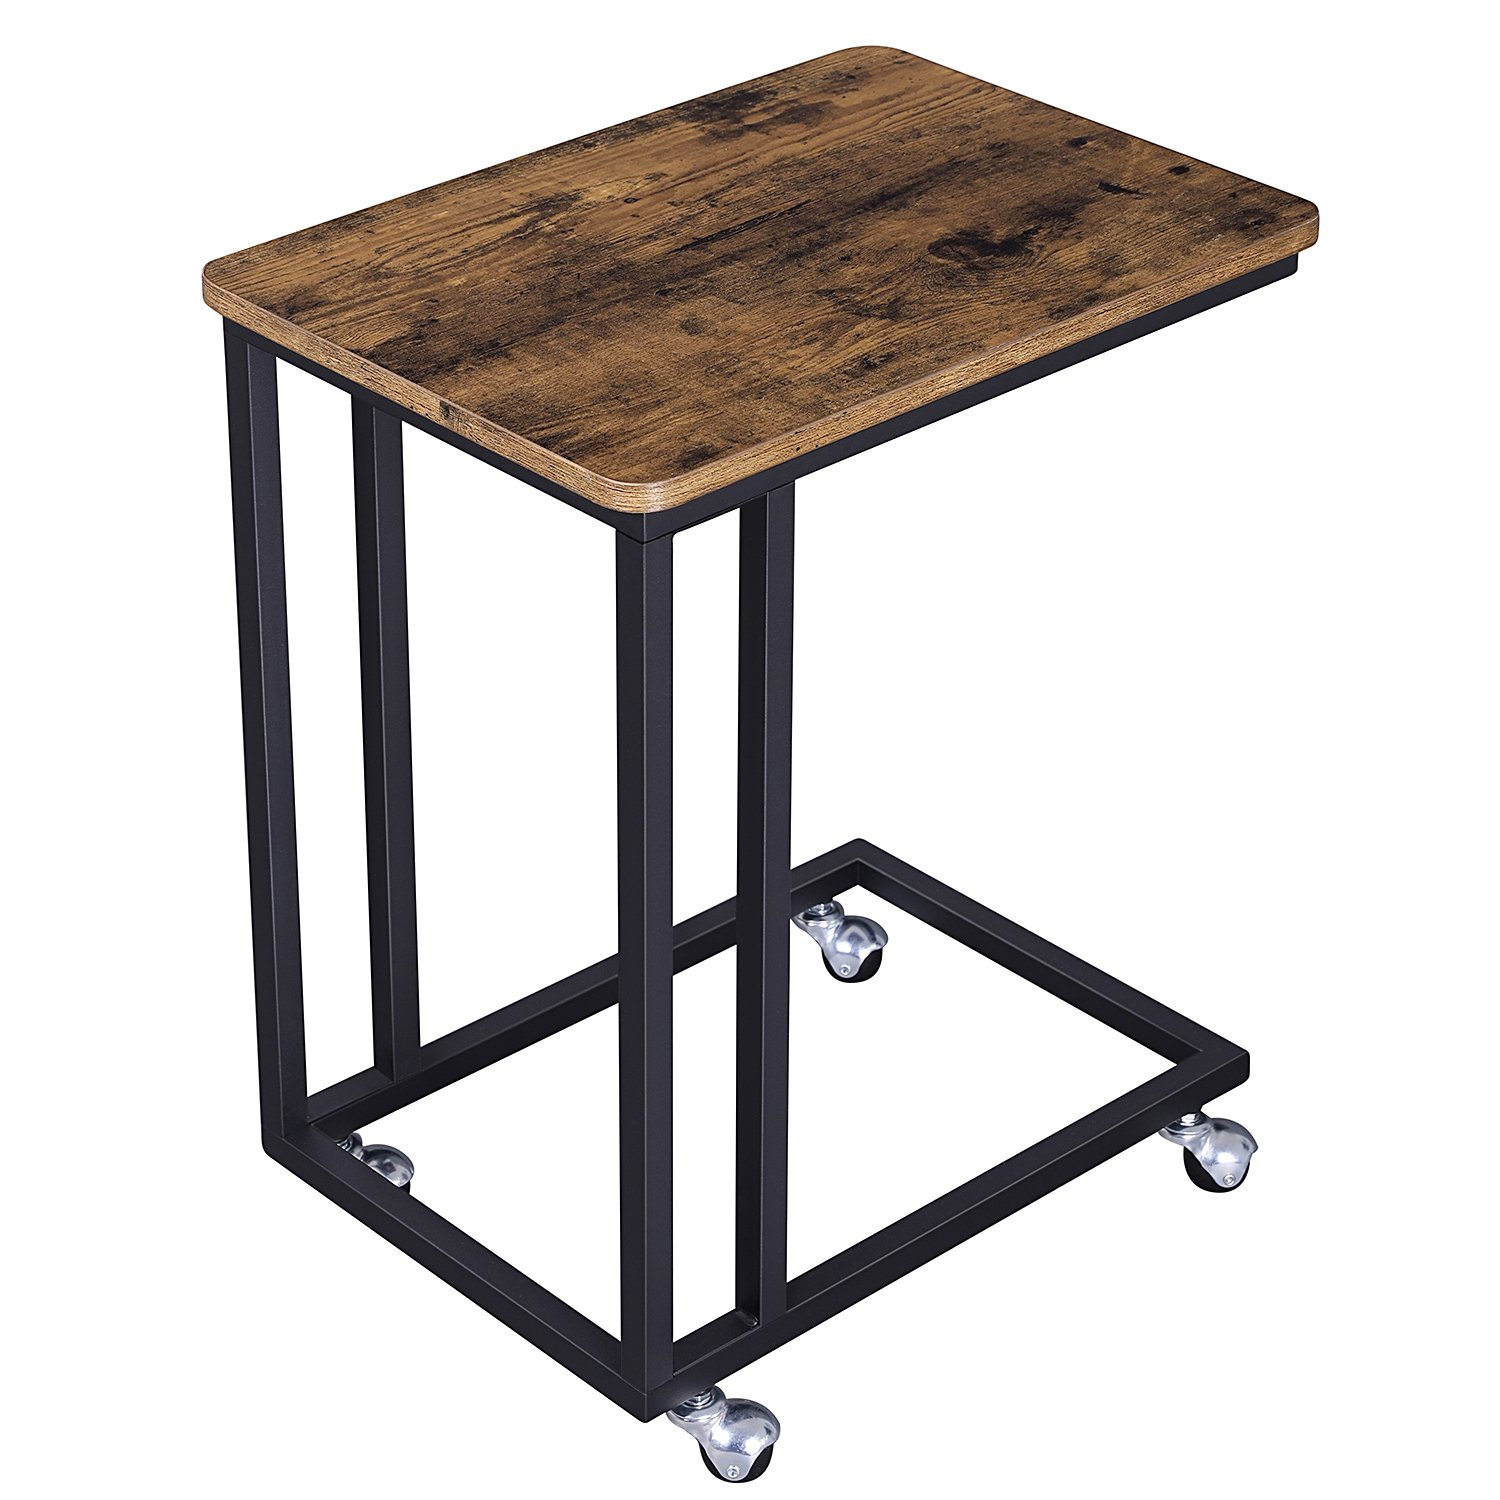 SONGMICS Vintage Snack Side Table, Mobile End Table for Coffee Laptop Tablet, Slides Next to Sofa Couch, Wood Look Accent Furniture with Metal Frame and Rolling Casters ULNT50X